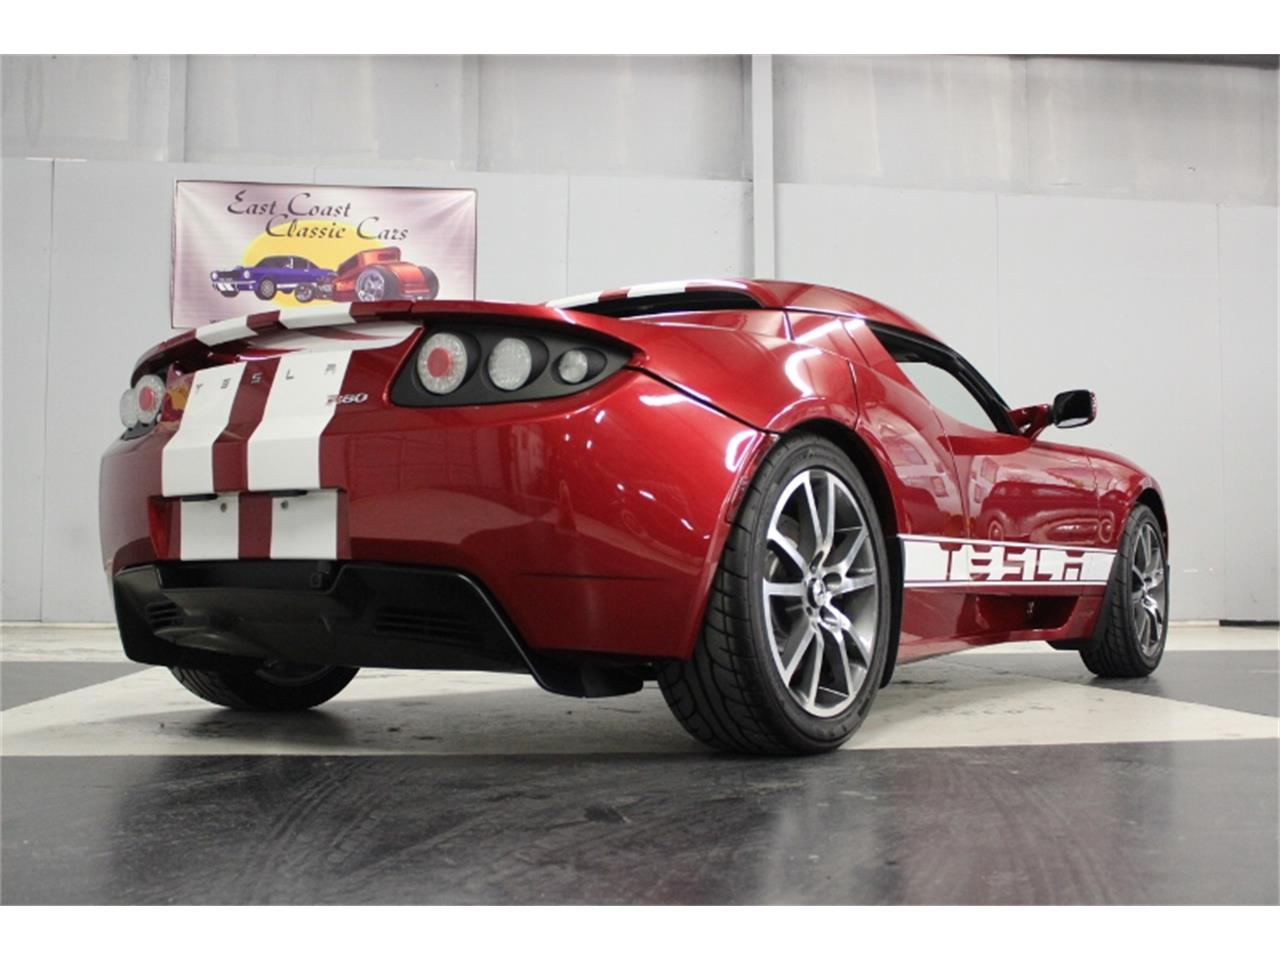 Large Picture of 2011 Tesla Roadster - $70,000.00 Offered by East Coast Classic Cars - PUDM